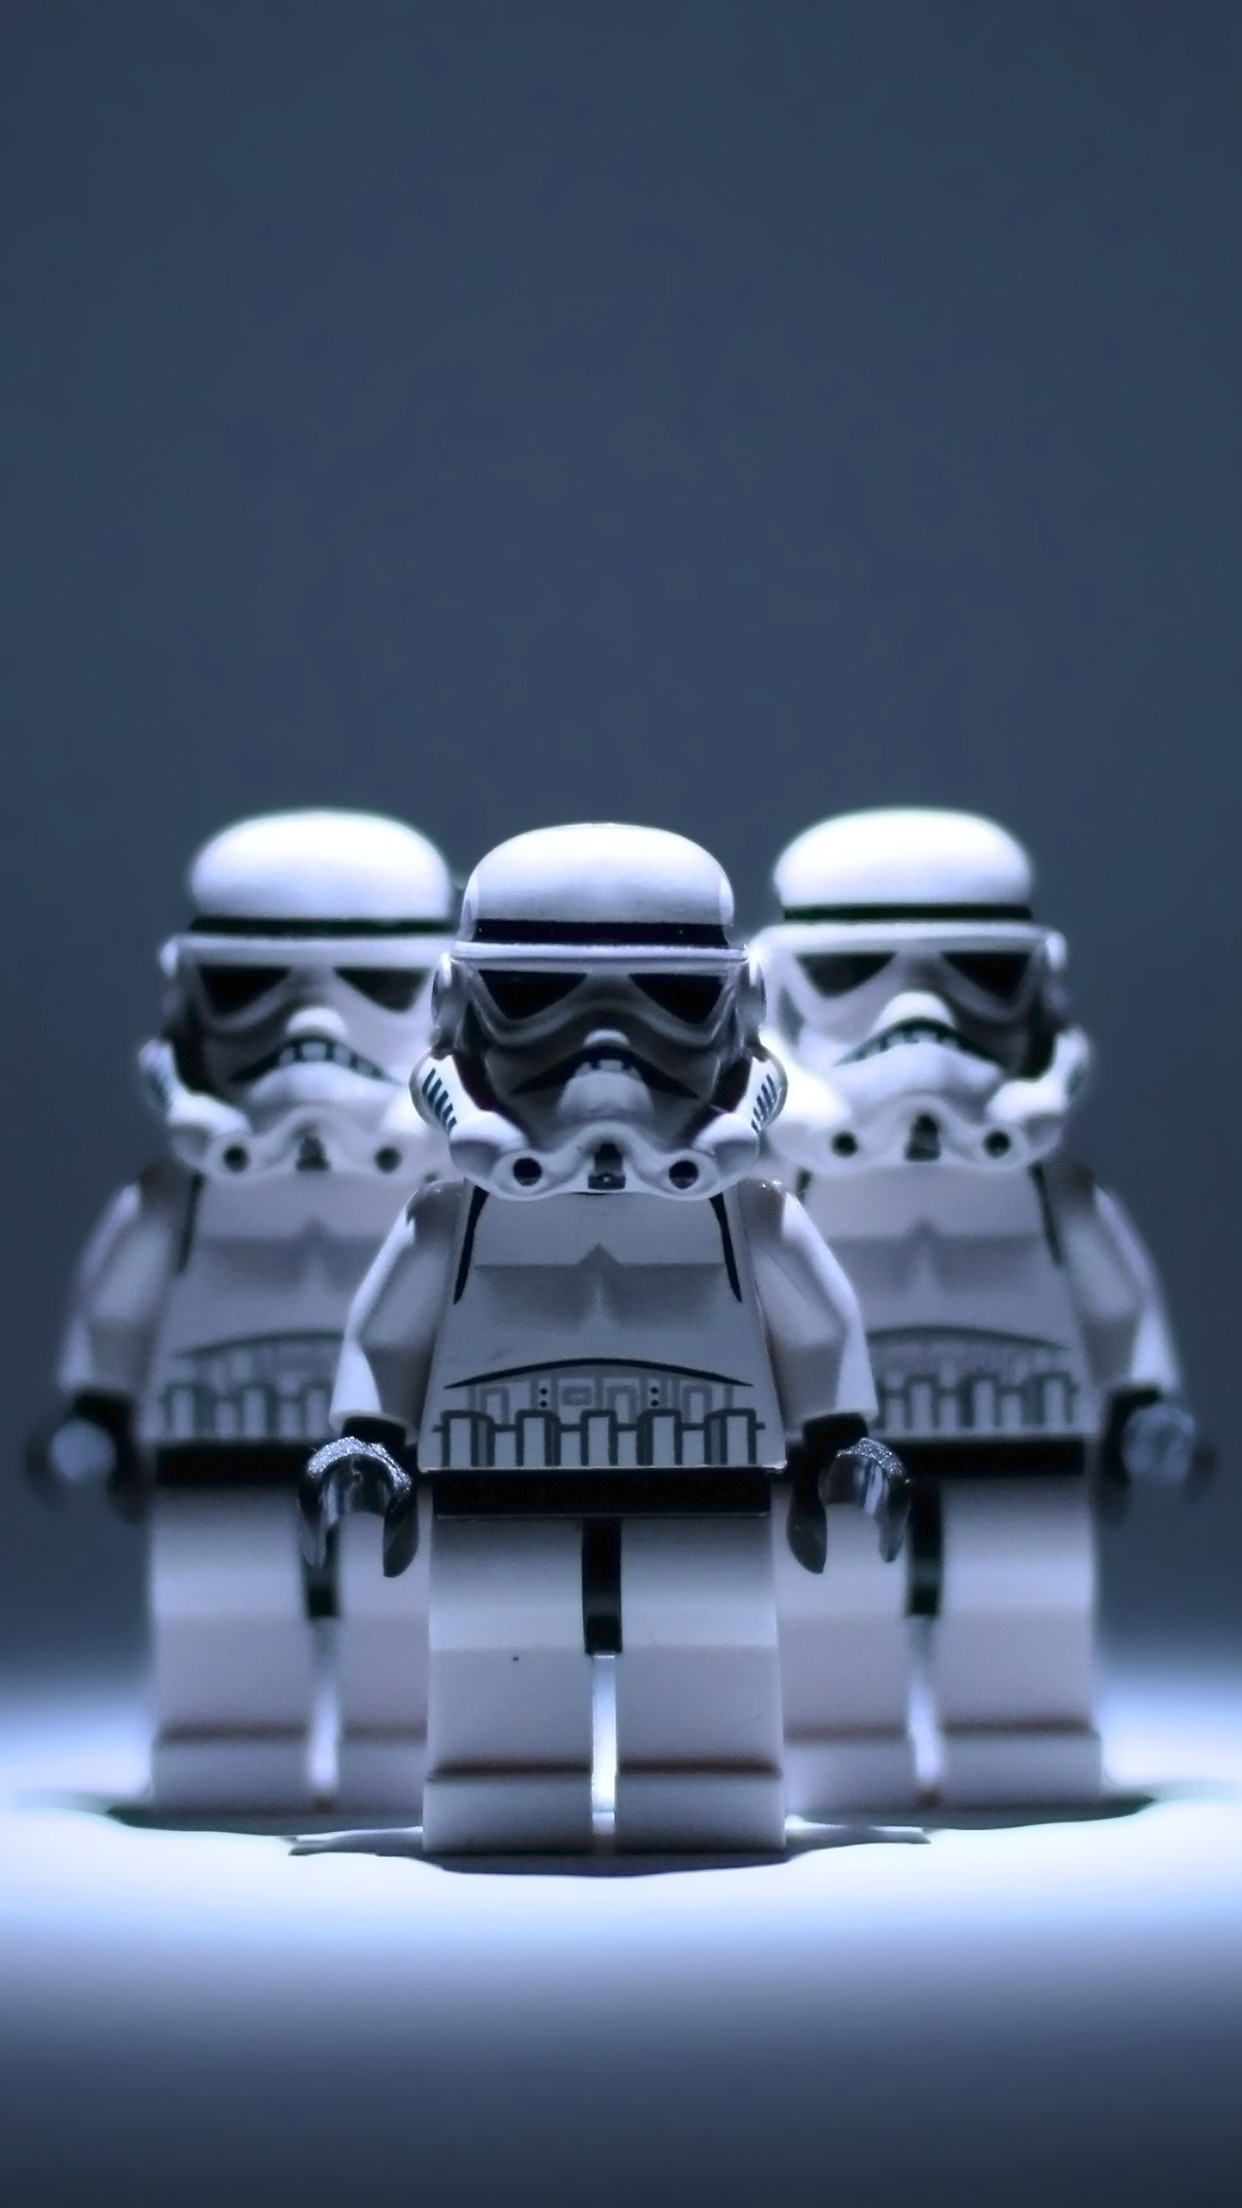 lego-star-wars-3wallpapers-parallax-iPhone